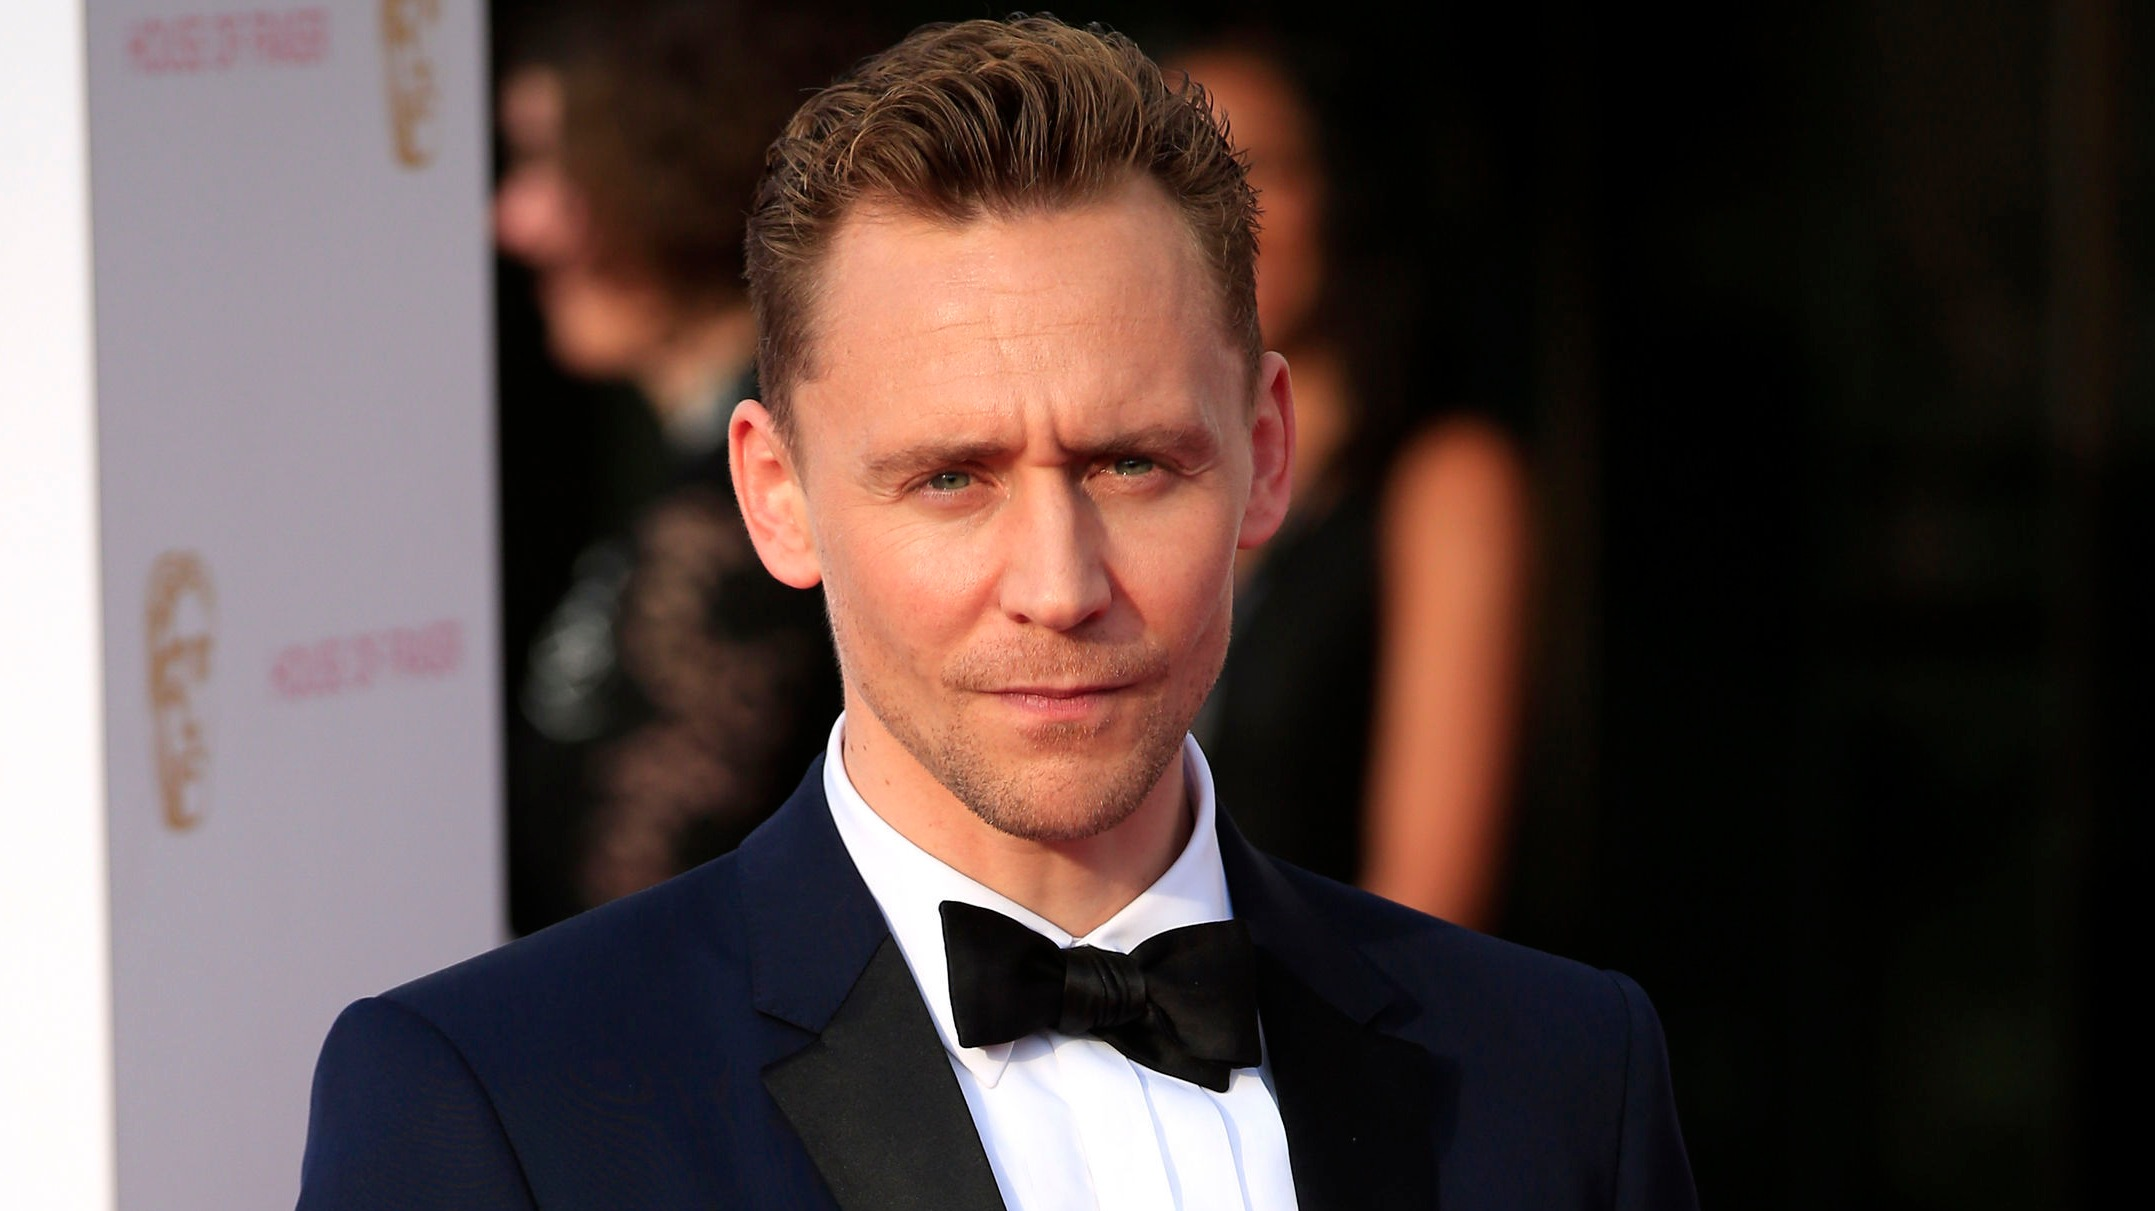 Bets On Tom Hiddleston As The Next James Bond Are High recommend